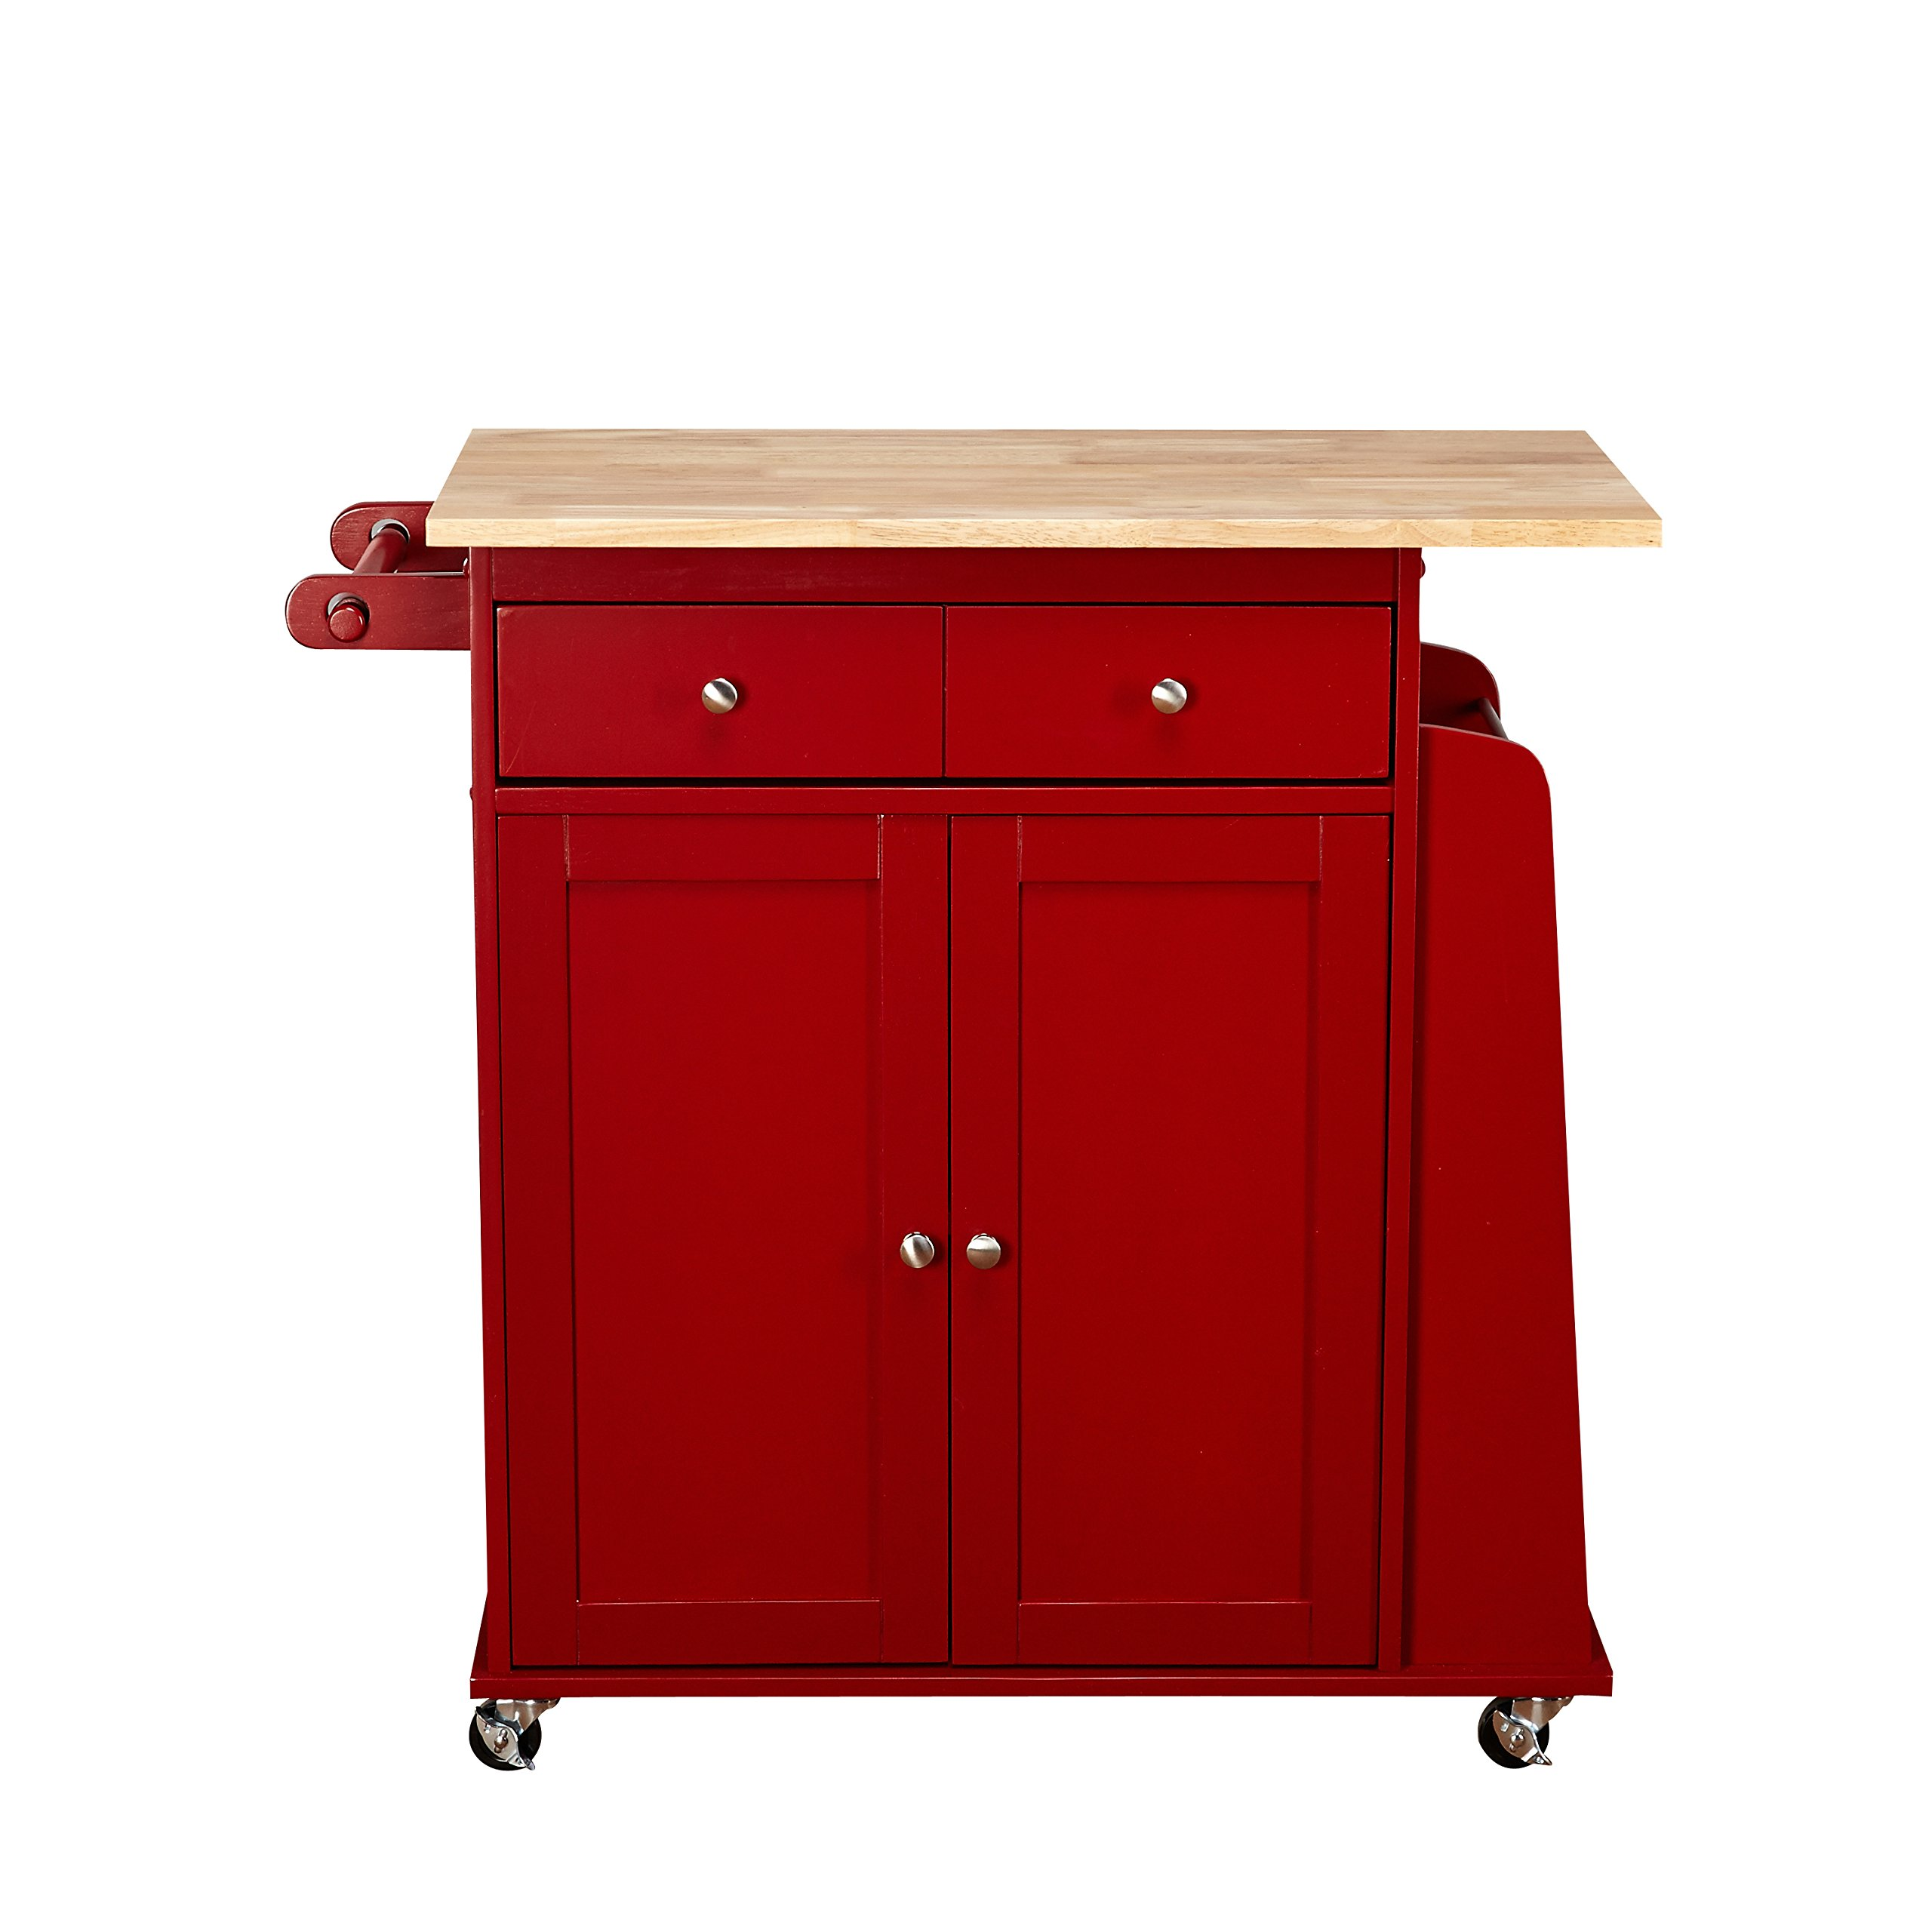 Target Marketing Systems Sonoma Collection Two-Toned Rolling Kitchen Cart with Drawer, Cabinet, and Spice Rack, Red/Natural